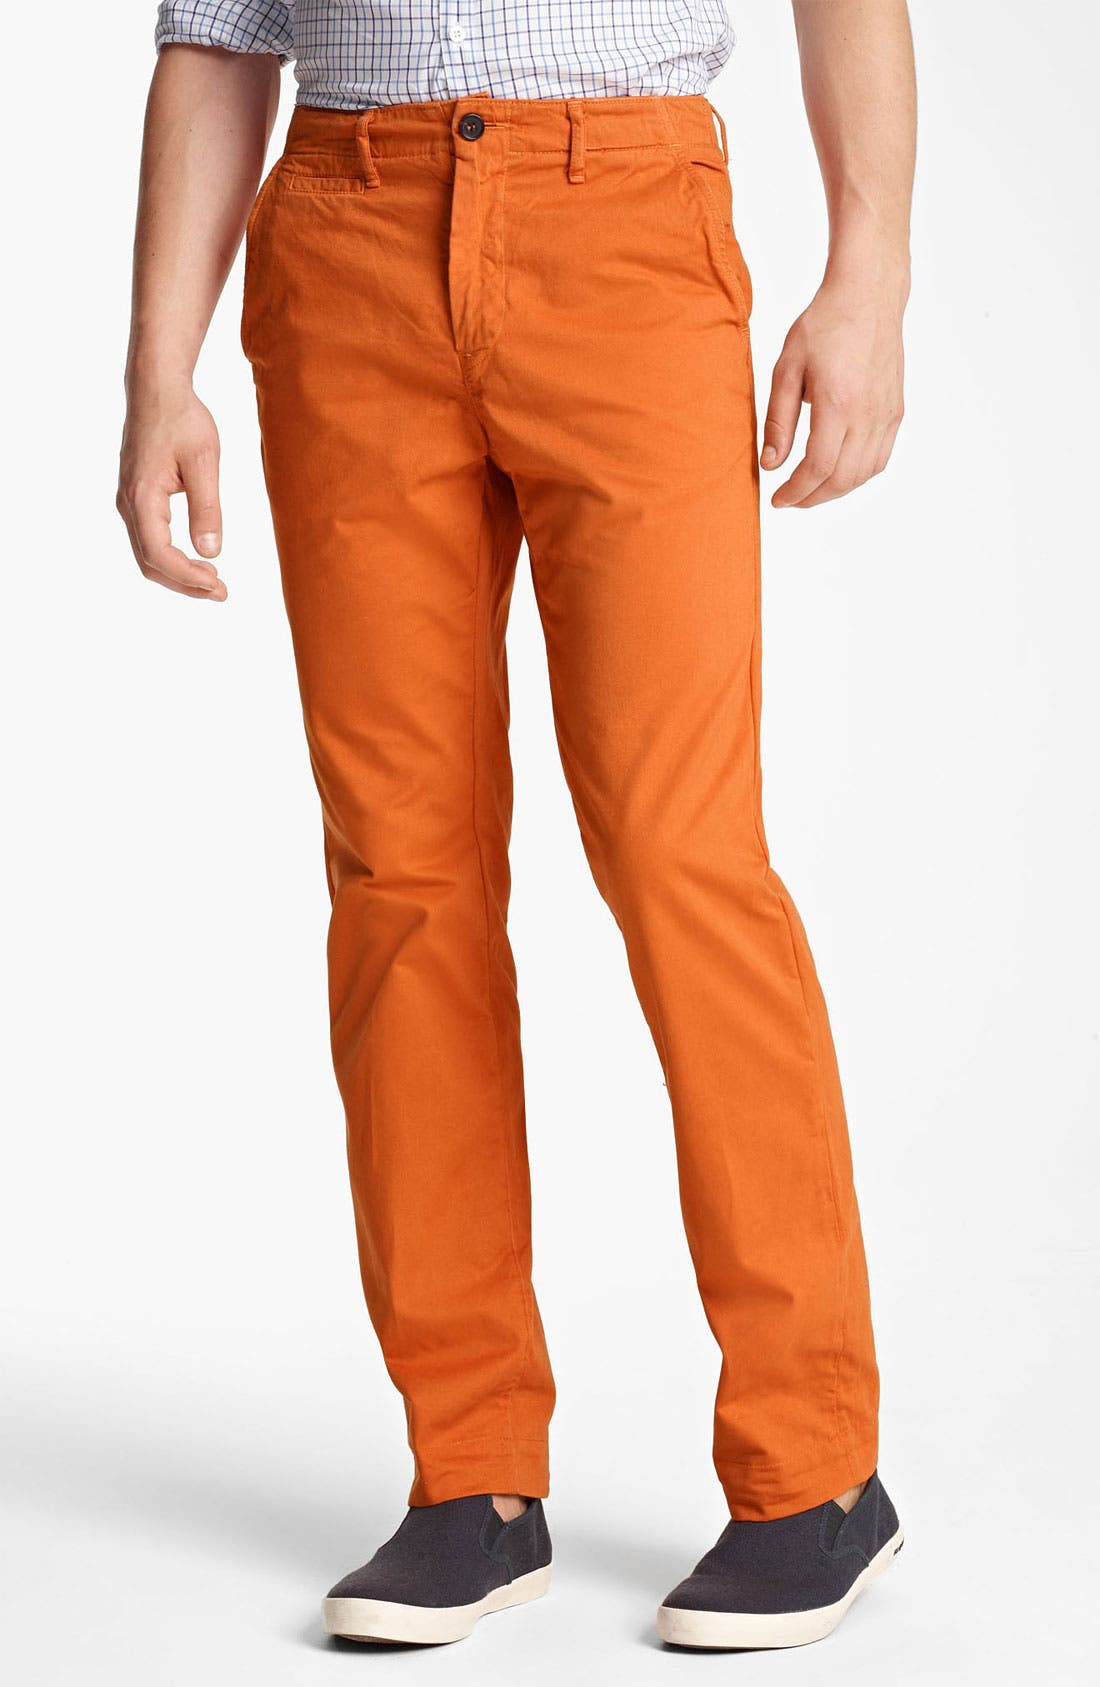 Alternate Image 1 Selected - Billy Reid 'Jack' Chinos